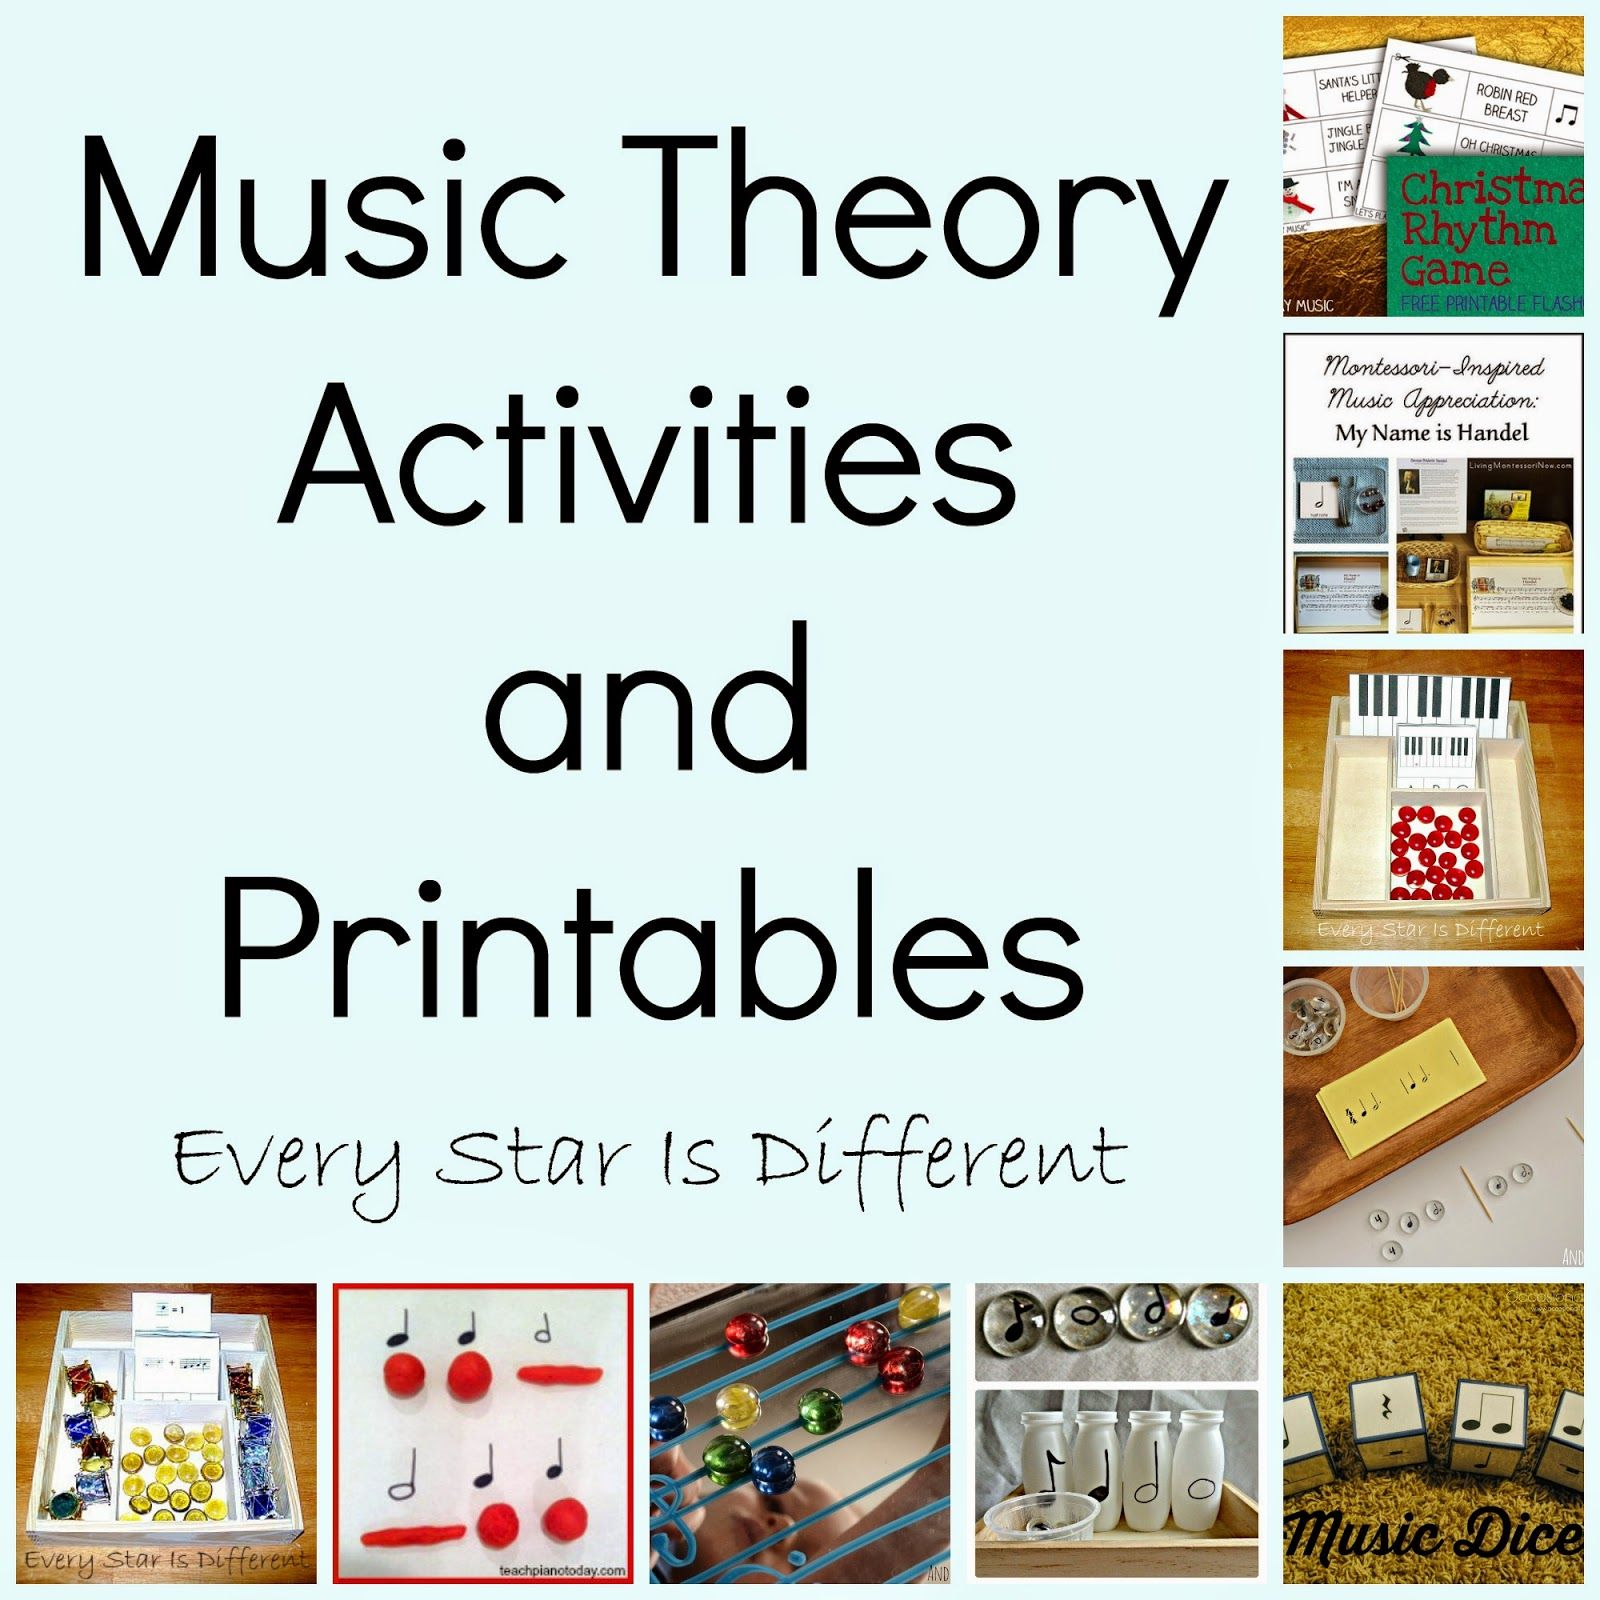 Music Theory Activities And Printables For Kids Klp Linky Music Activities Music Activities For Kids Music Curriculum [ 1600 x 1600 Pixel ]